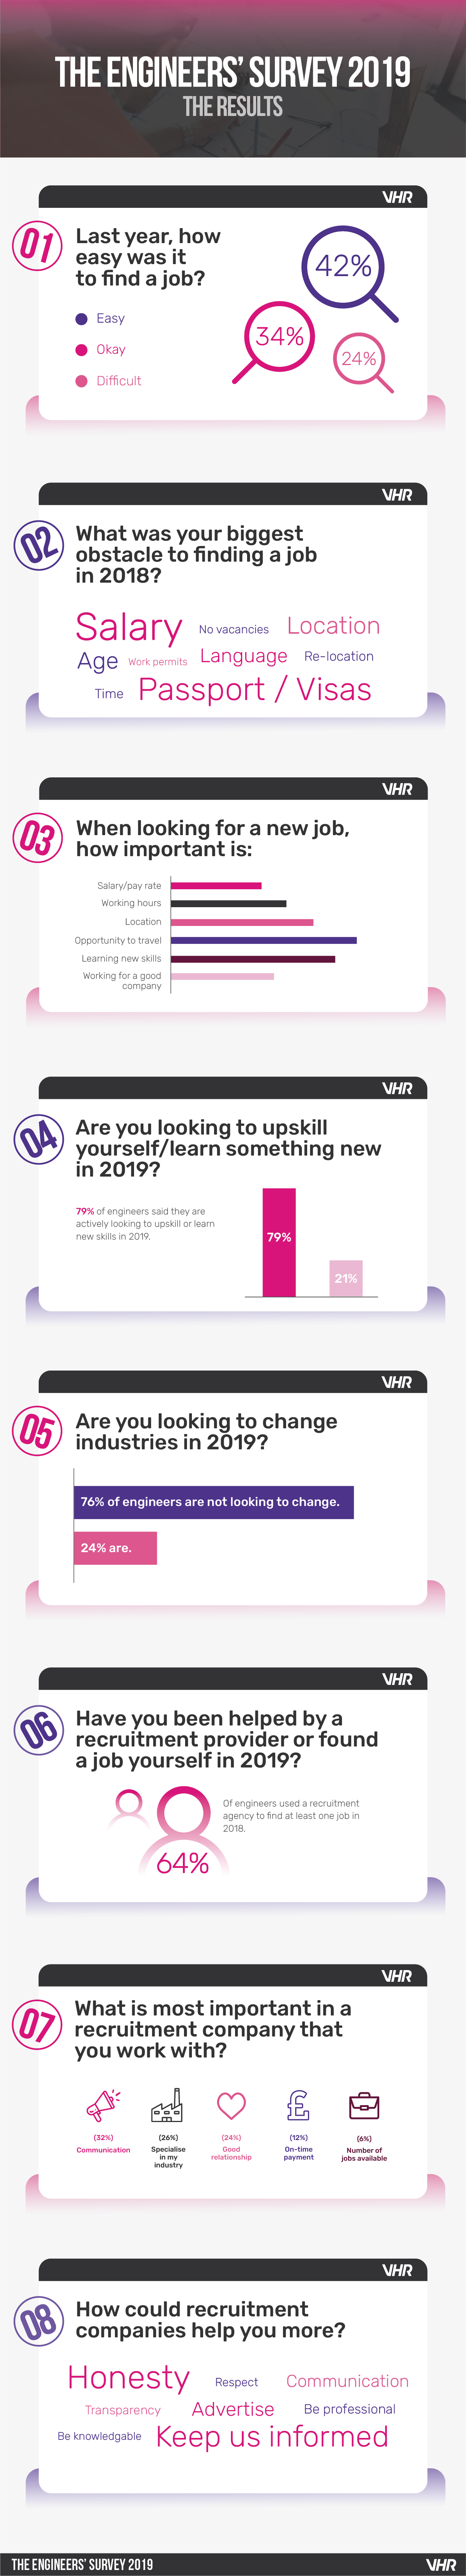 Engineers Survey 2019 Infographic